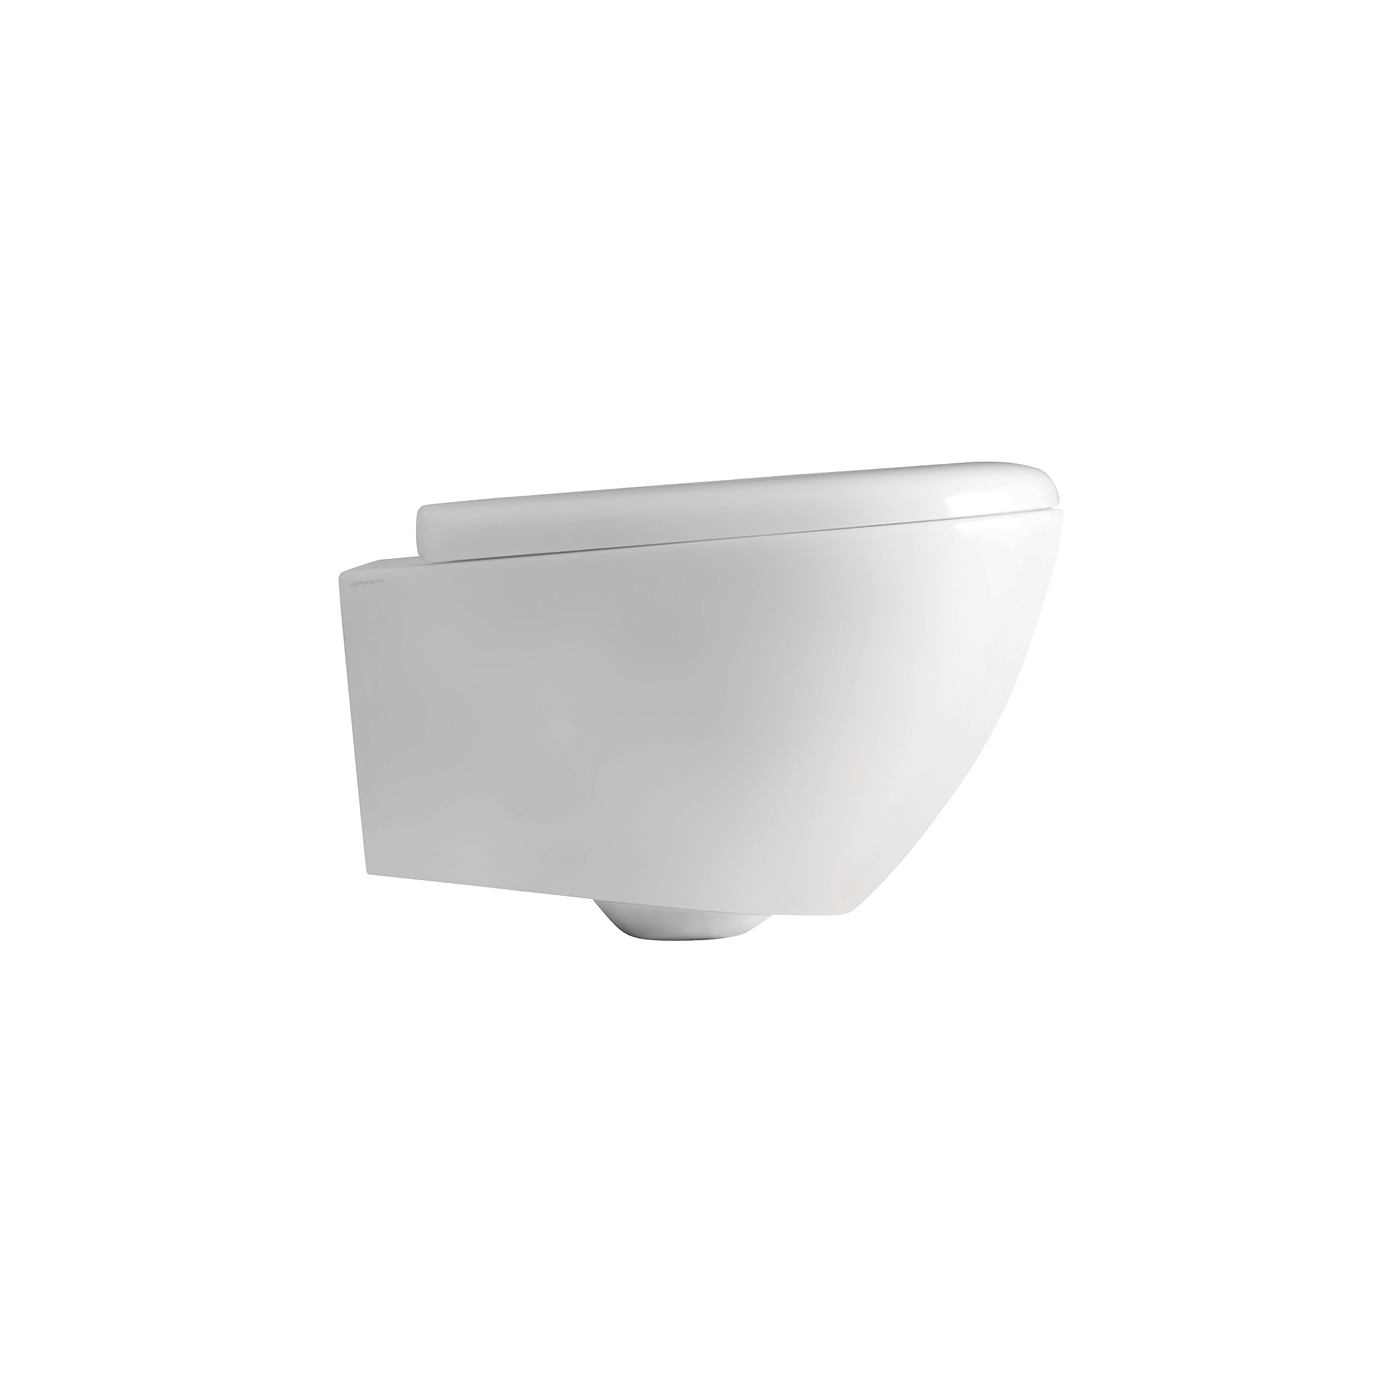 Wall hung wc - Model deco wc ...